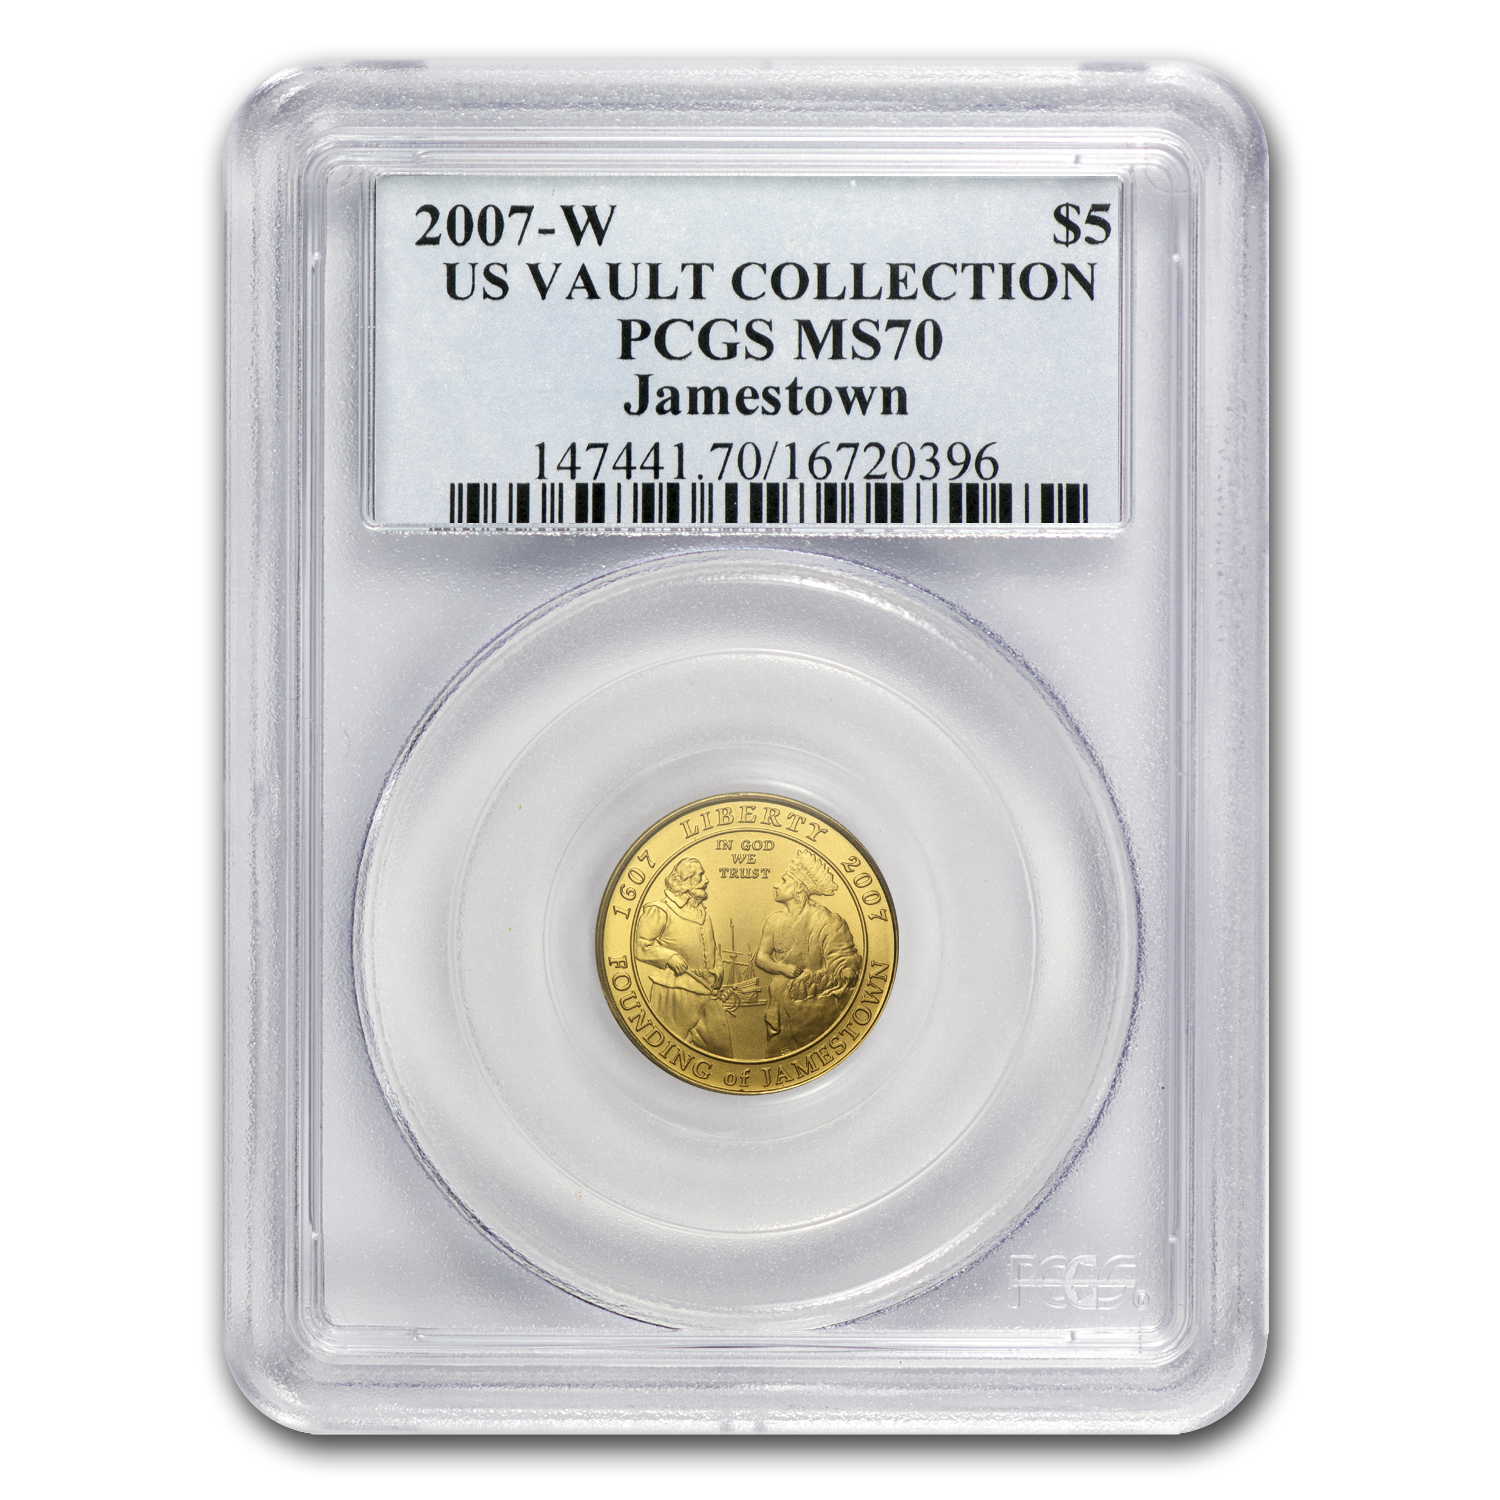 2007-W Gold $5 Commemorative Jamestown MS-70 PCGS